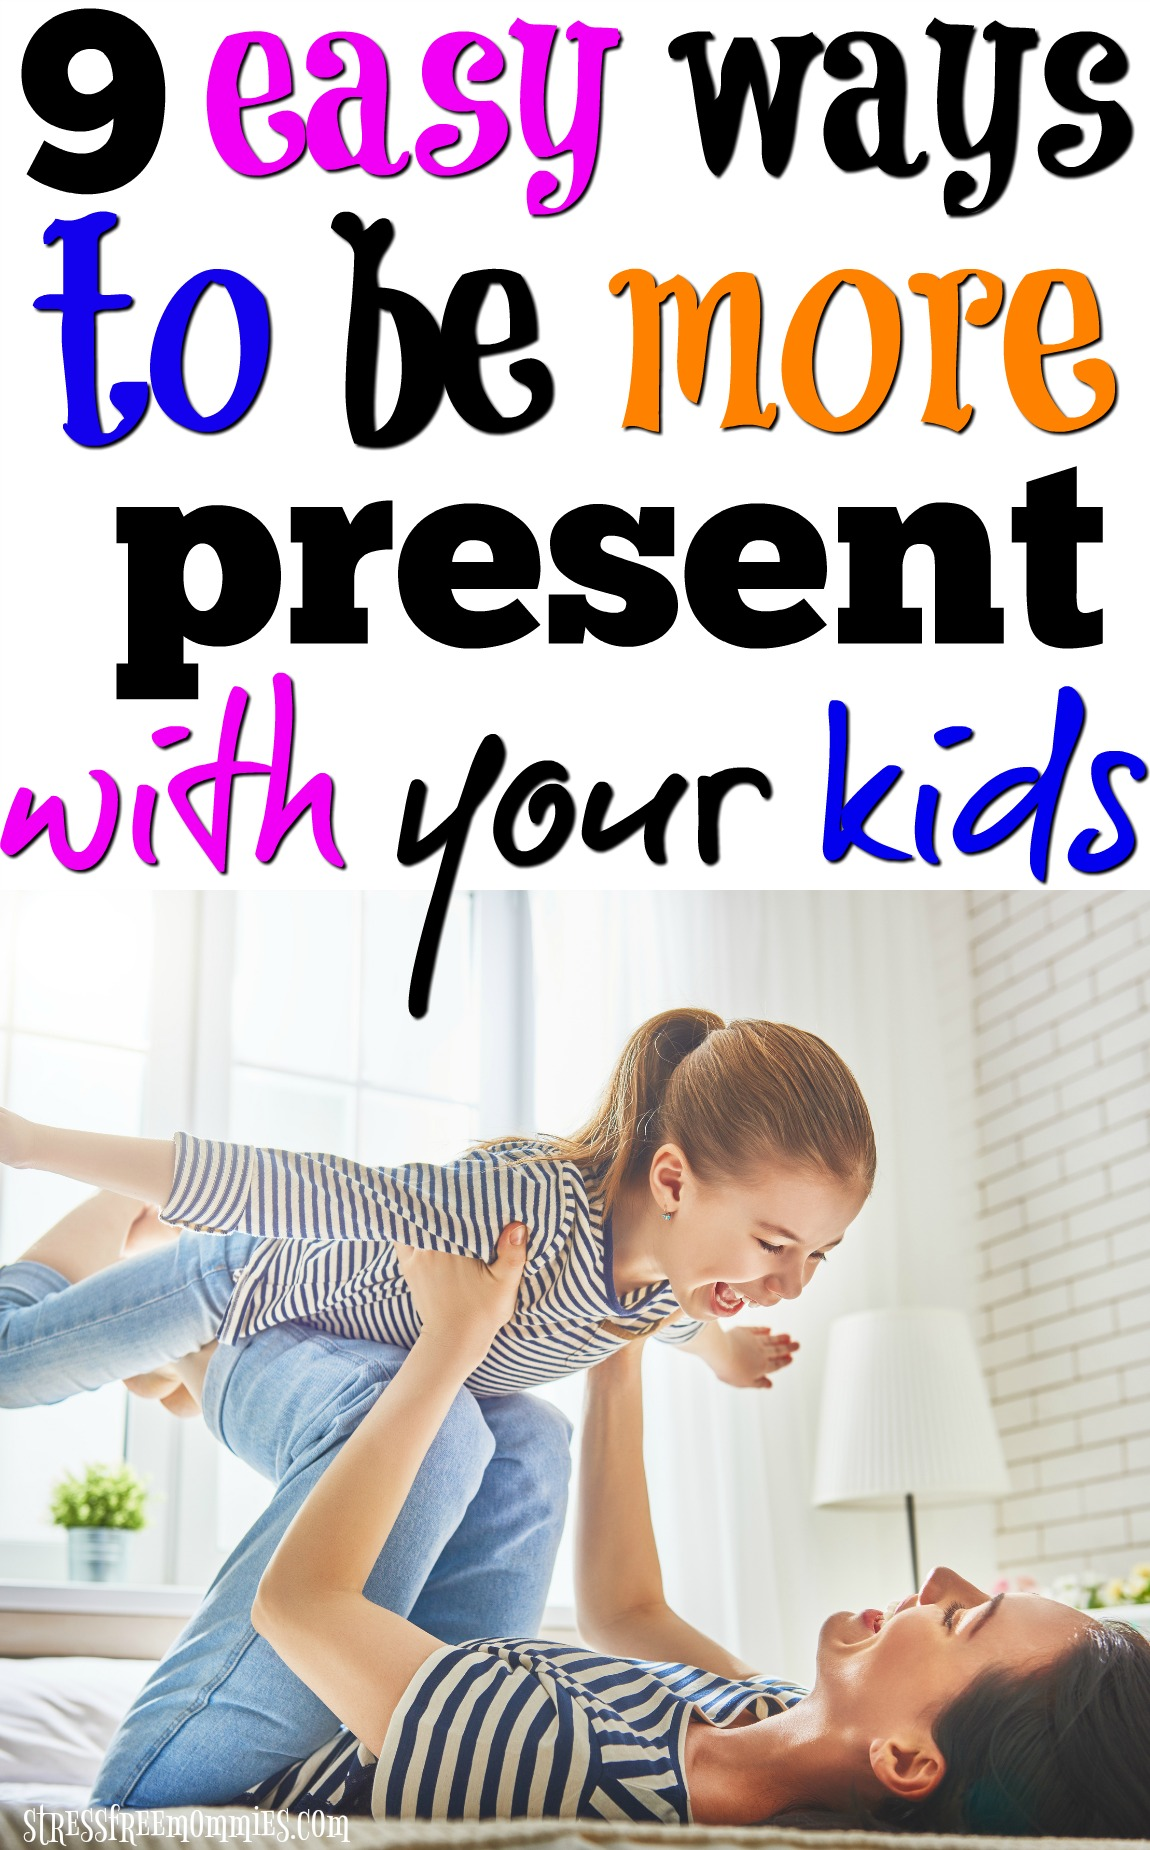 Learn the easy tips and tricks to be a more present parent for your child. It\'s important to build a strong parent-child relationship. Let\'s make it happen! #parentingtips